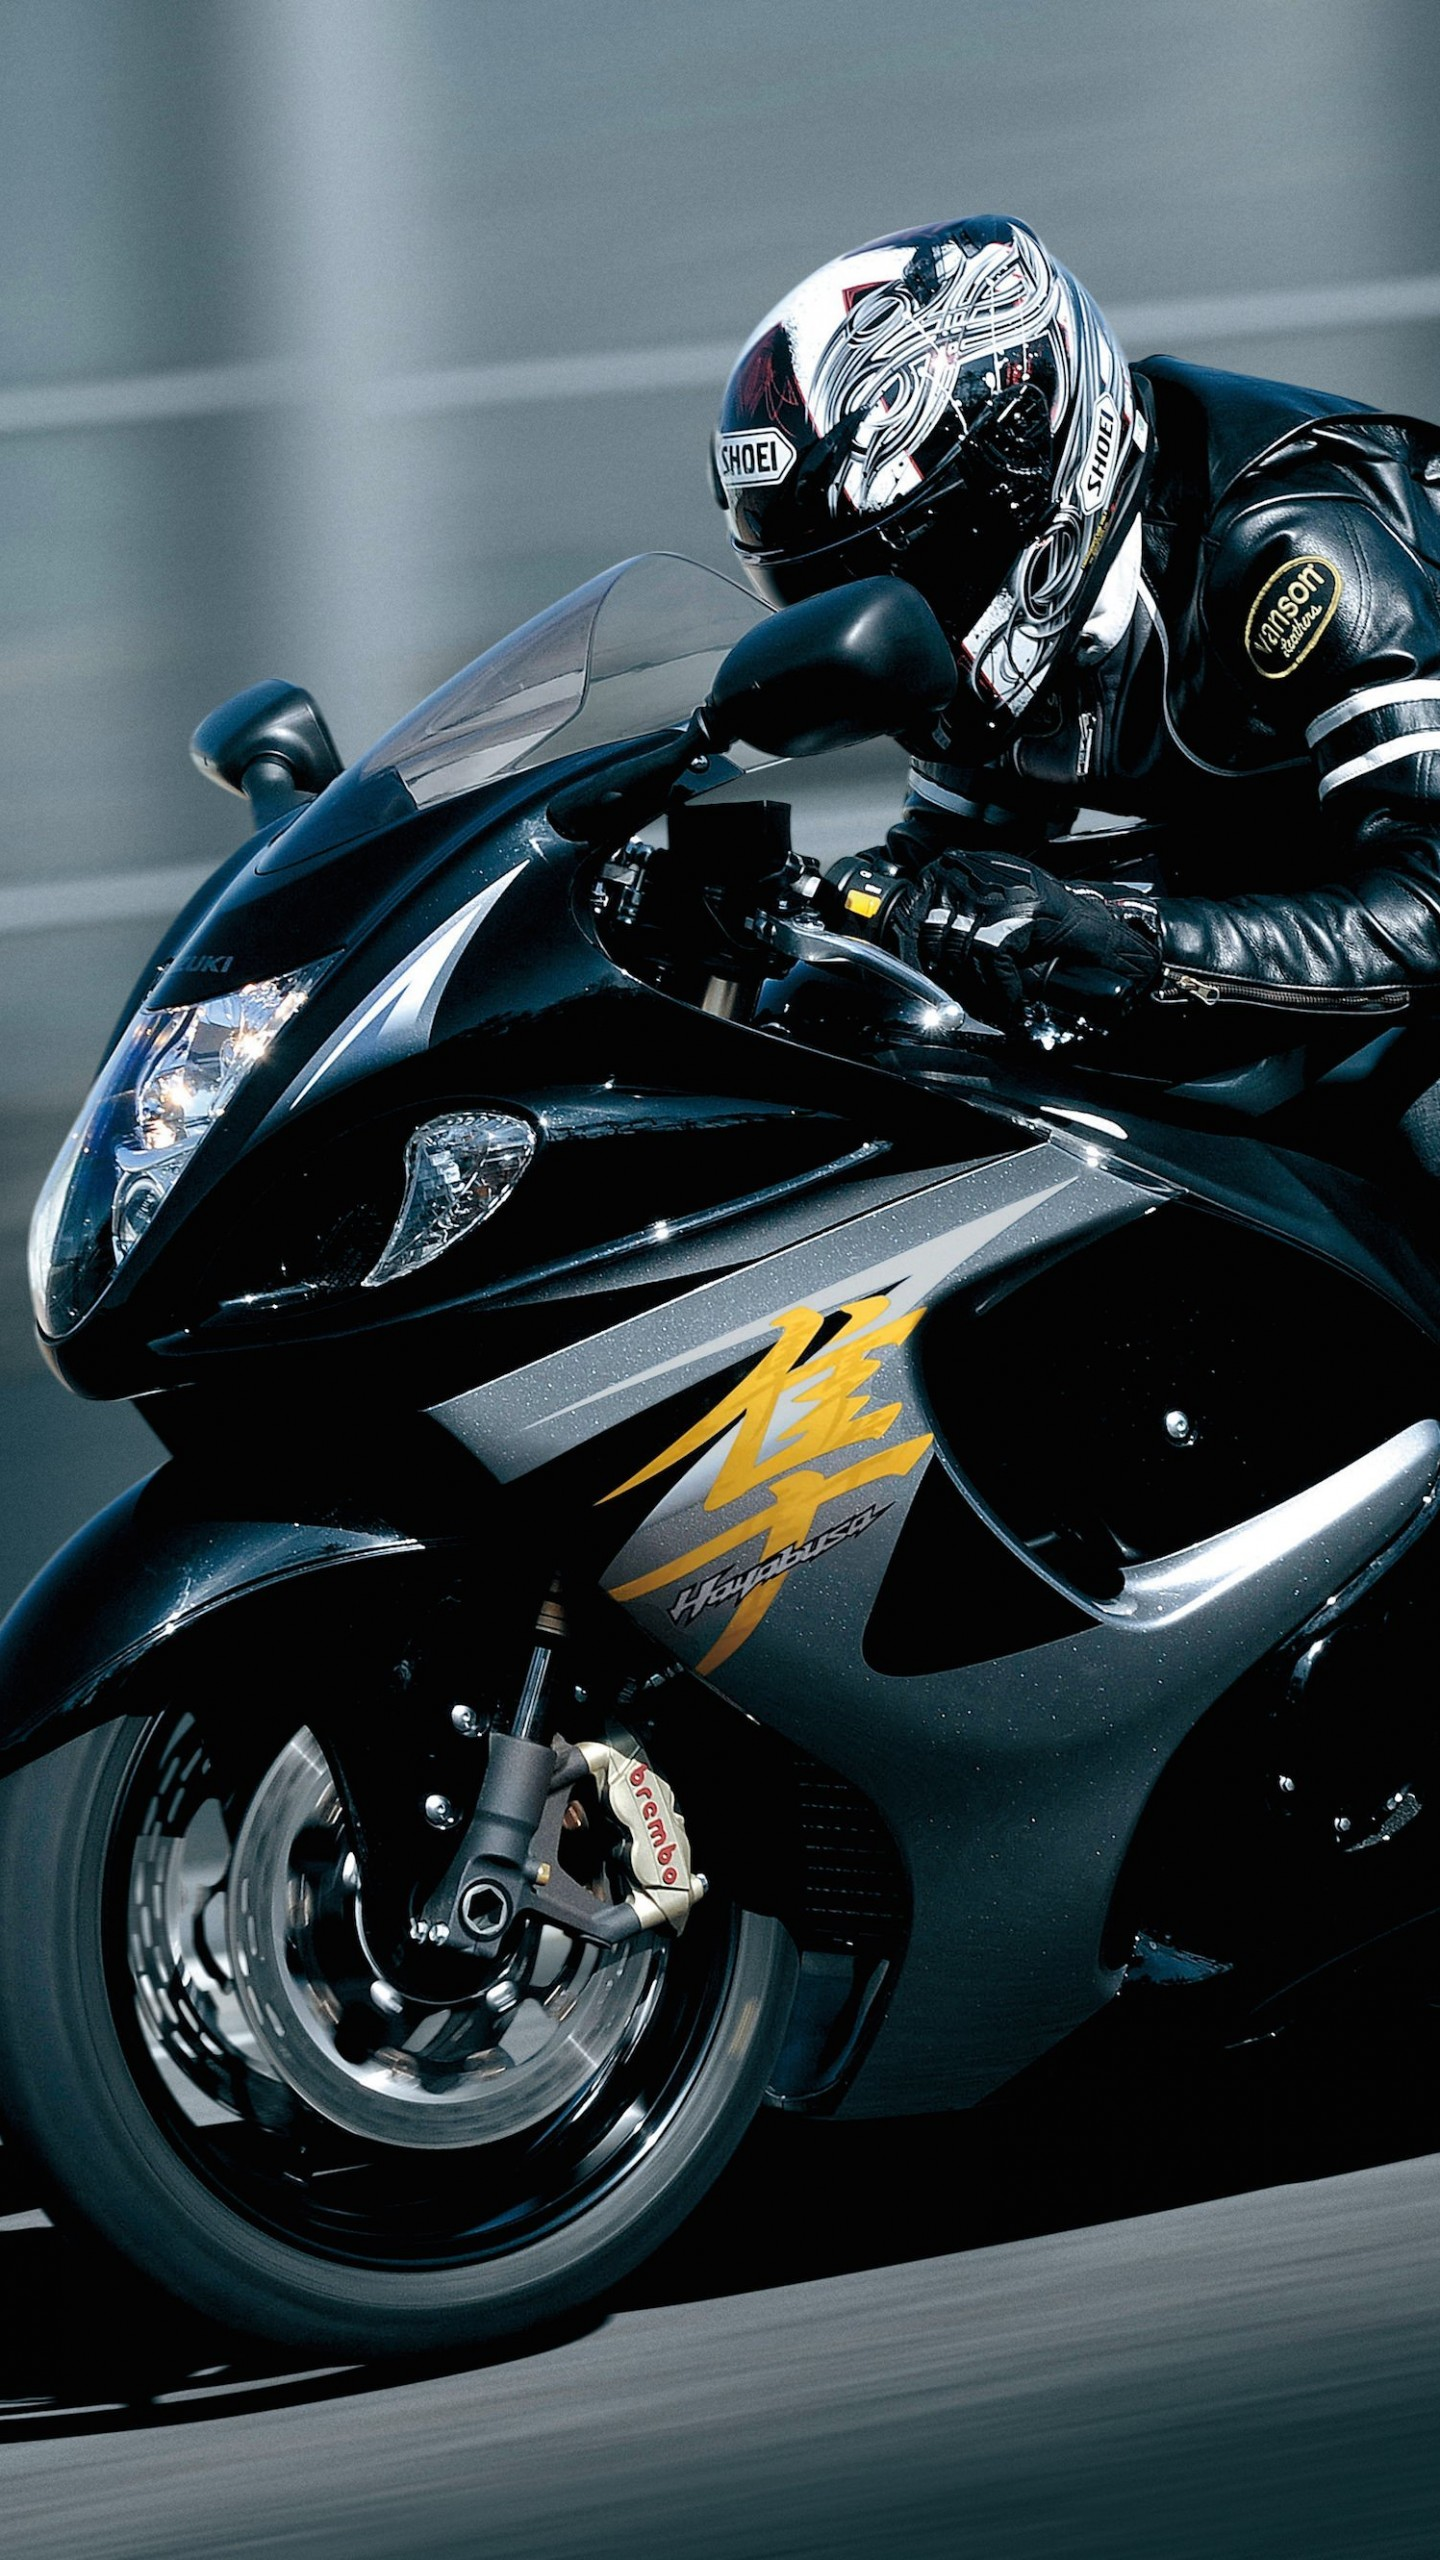 Suzuki Hayabusa GSX 1300R Wallpaper for Google Nexus 6